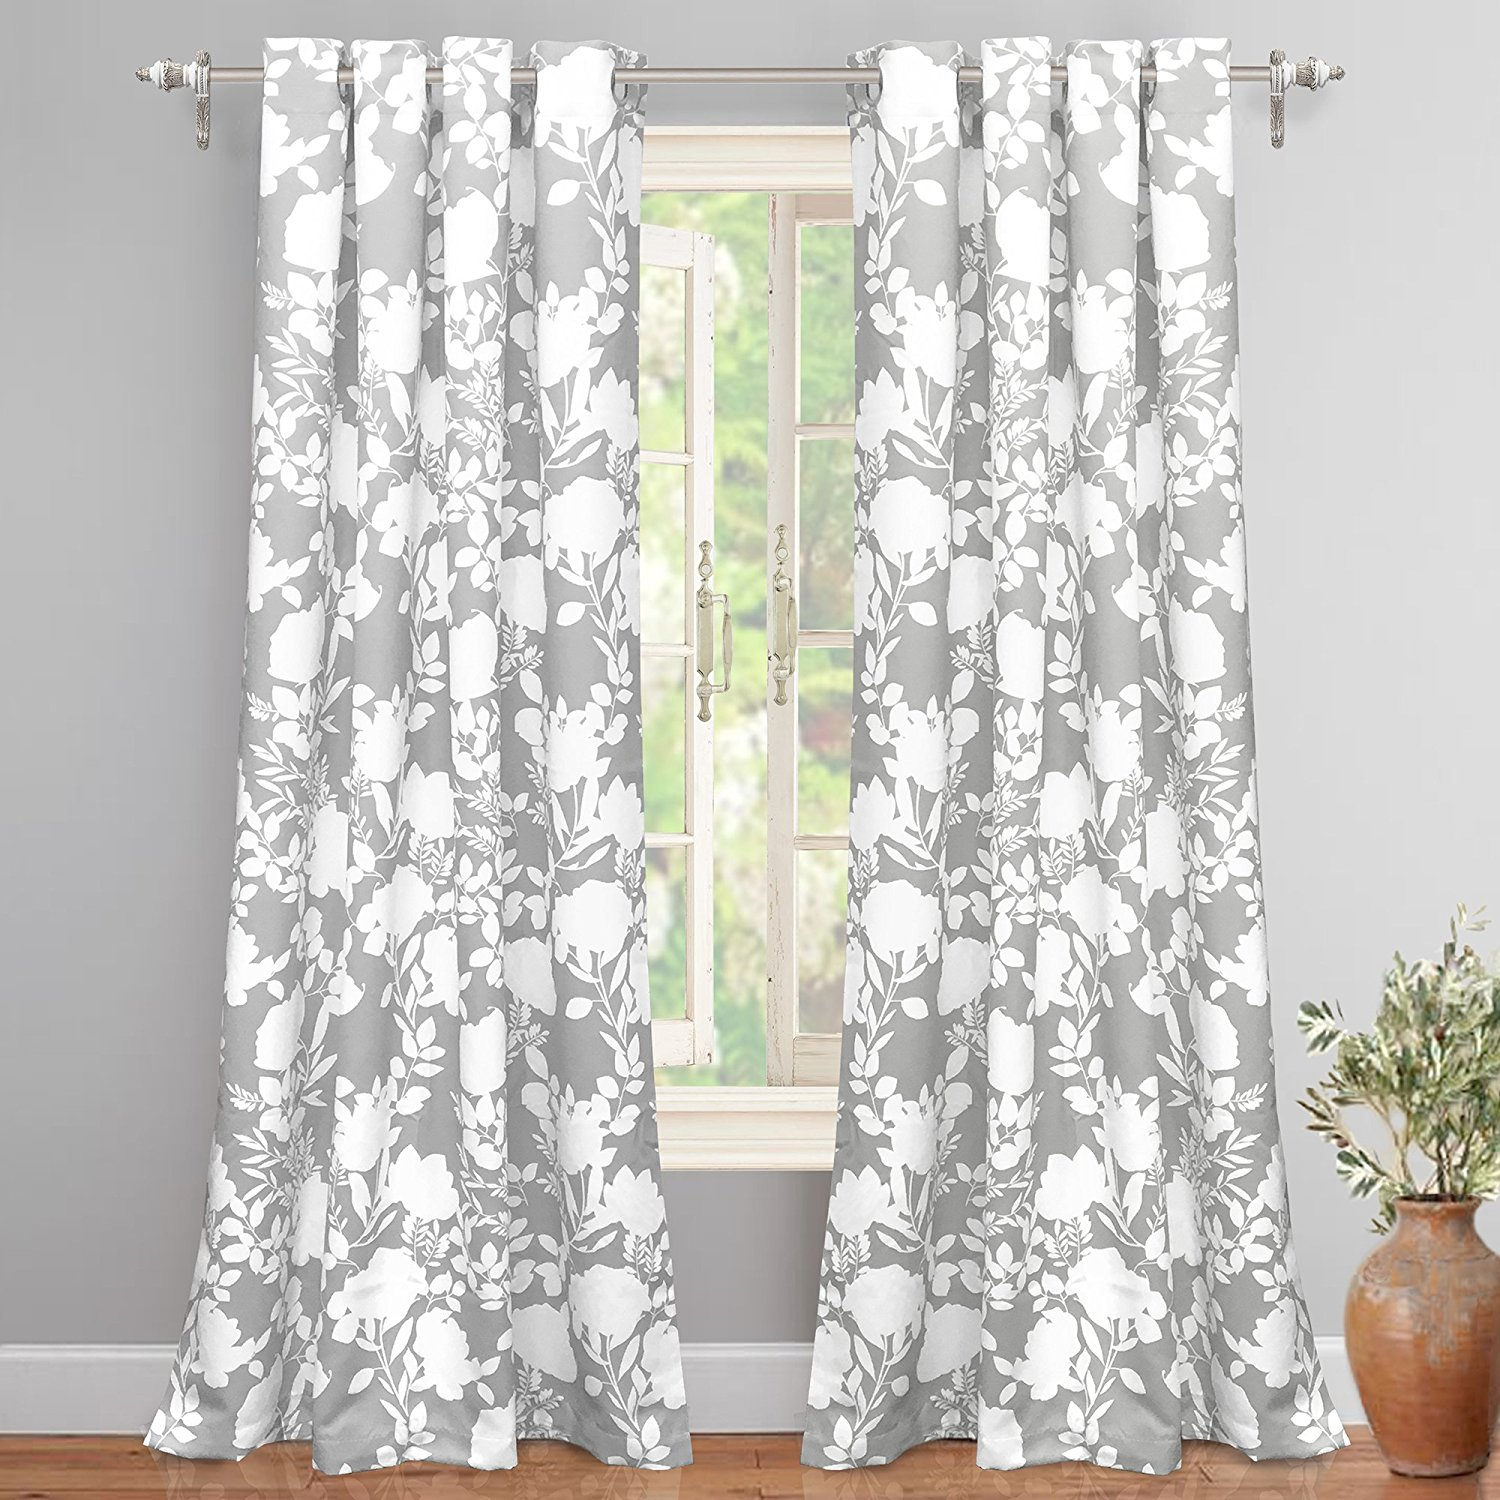 "DriftAway Floral Delight Room Darkening Grommet Unlined Window Curtains, Set of Two Panels, each 52""x84"" (Gray)"